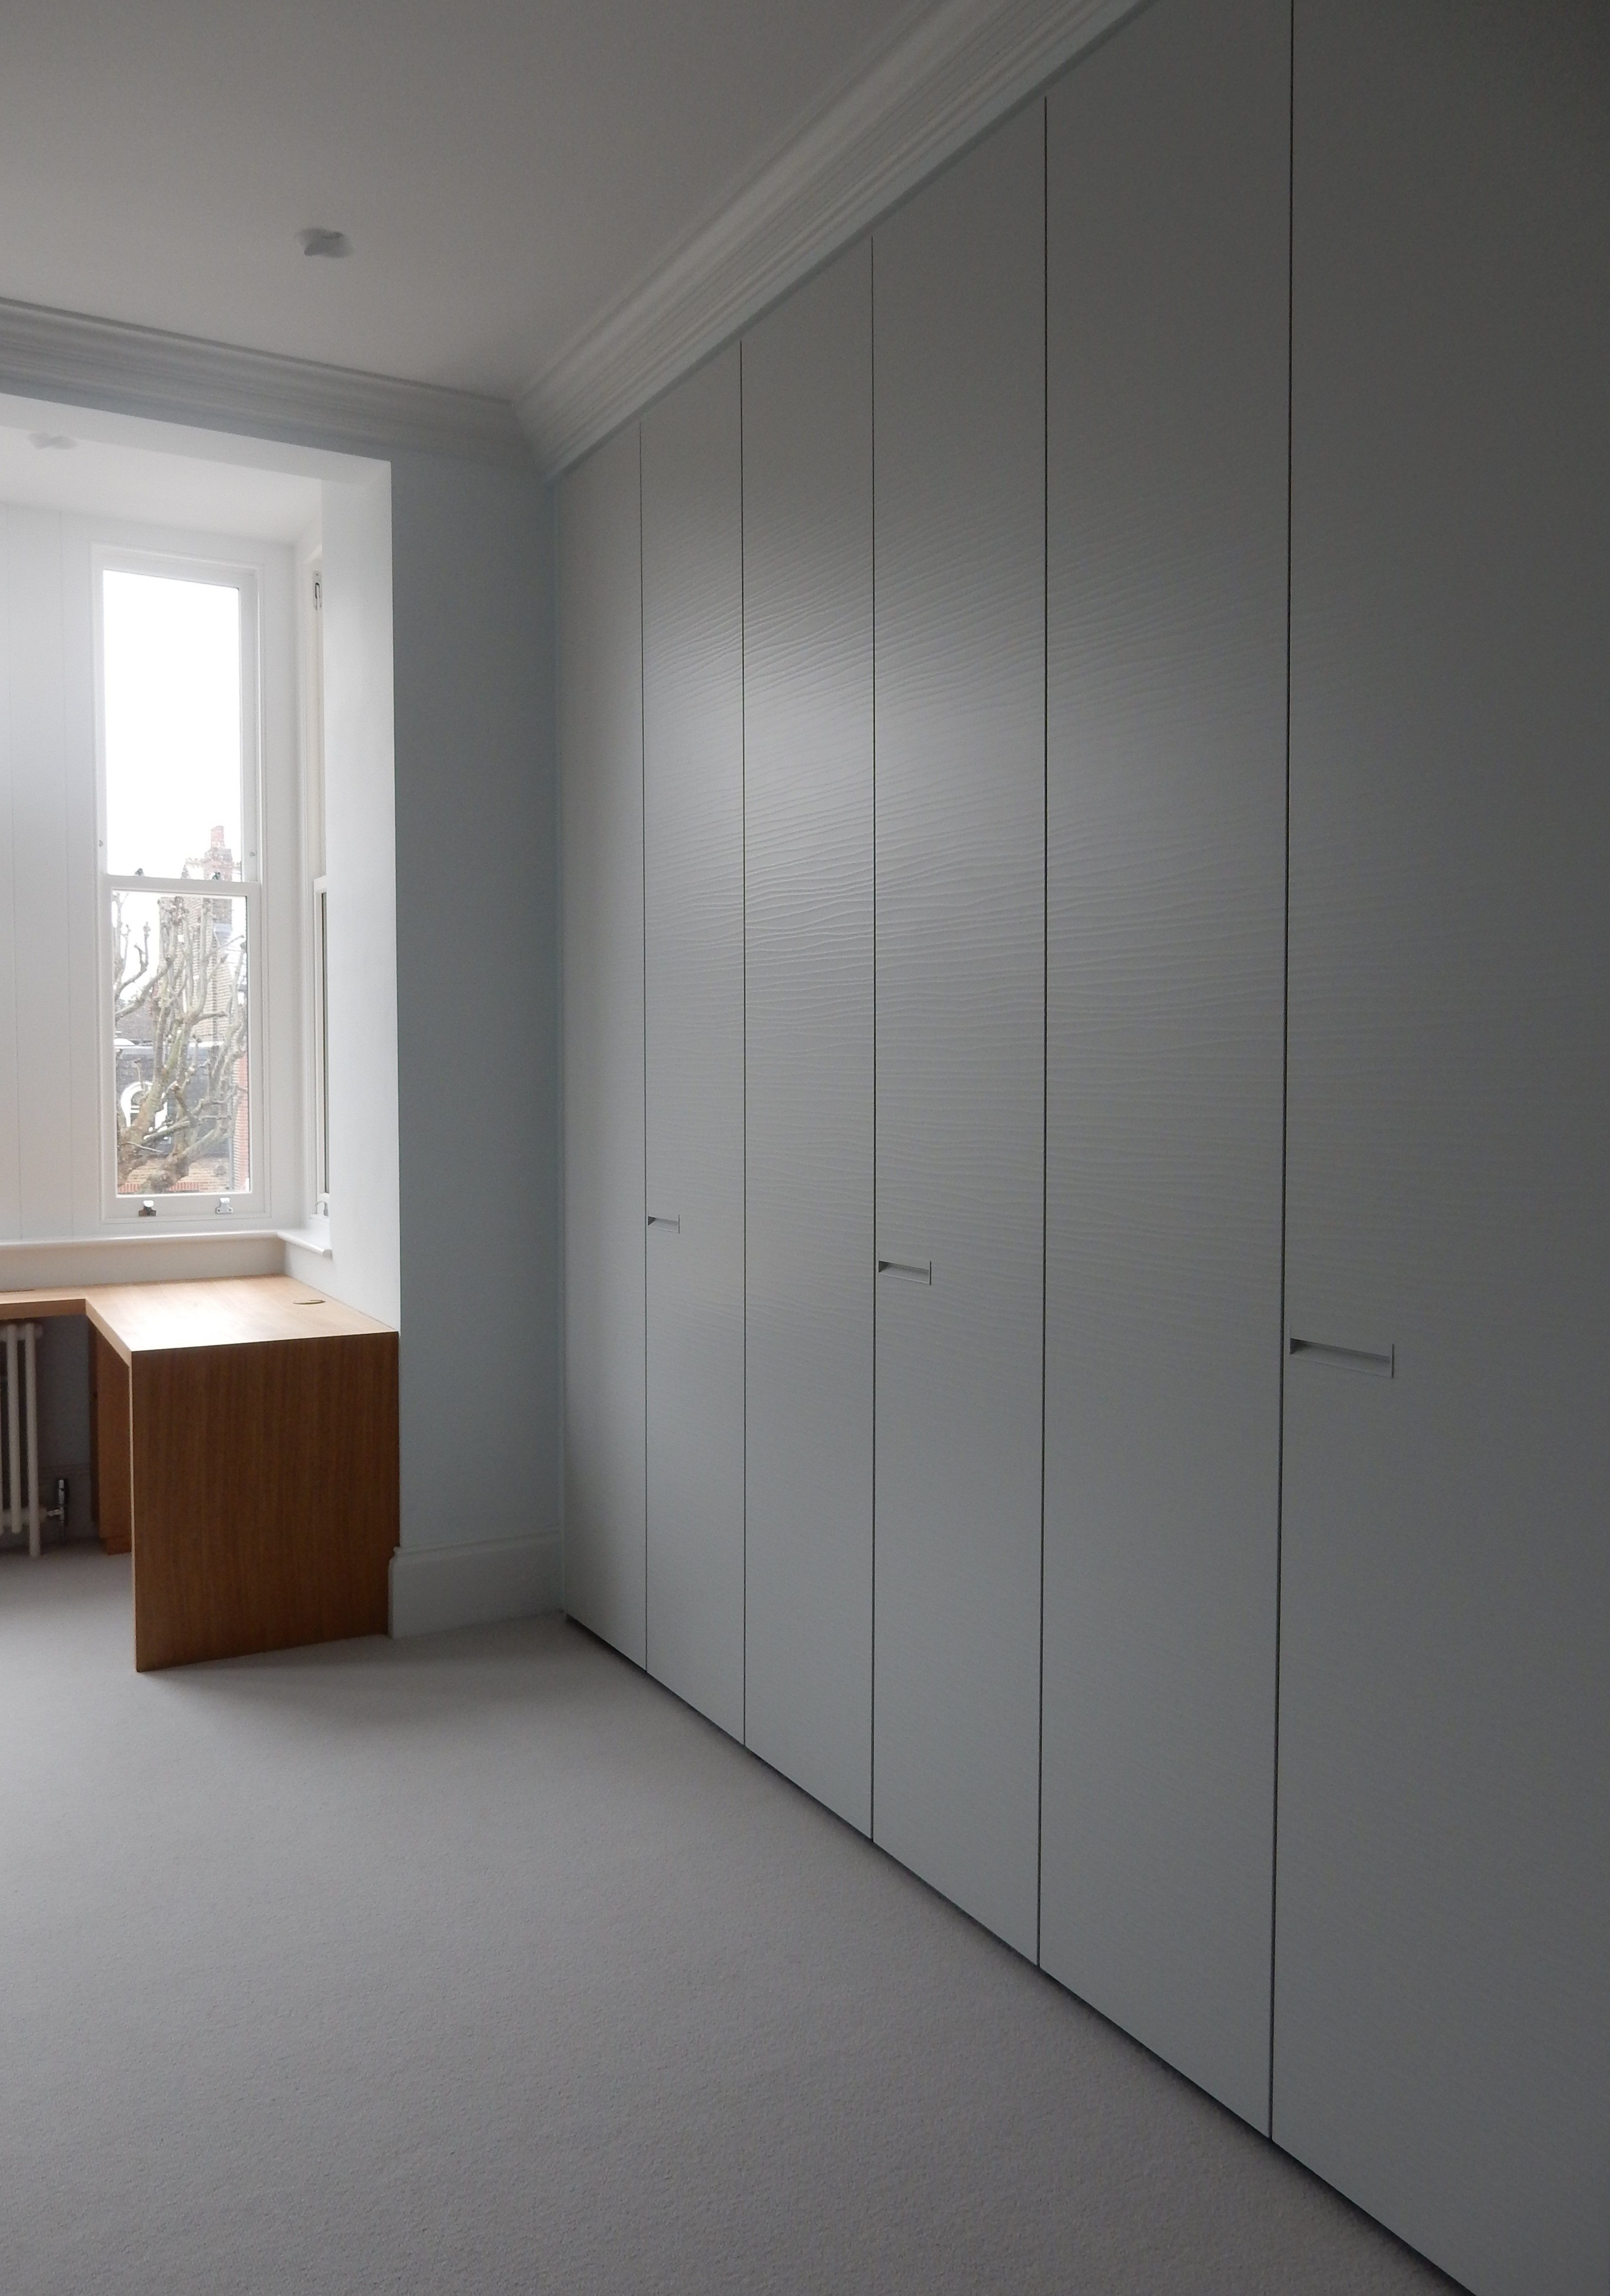 creativemass - wardrobes, poliform, bedroom, London